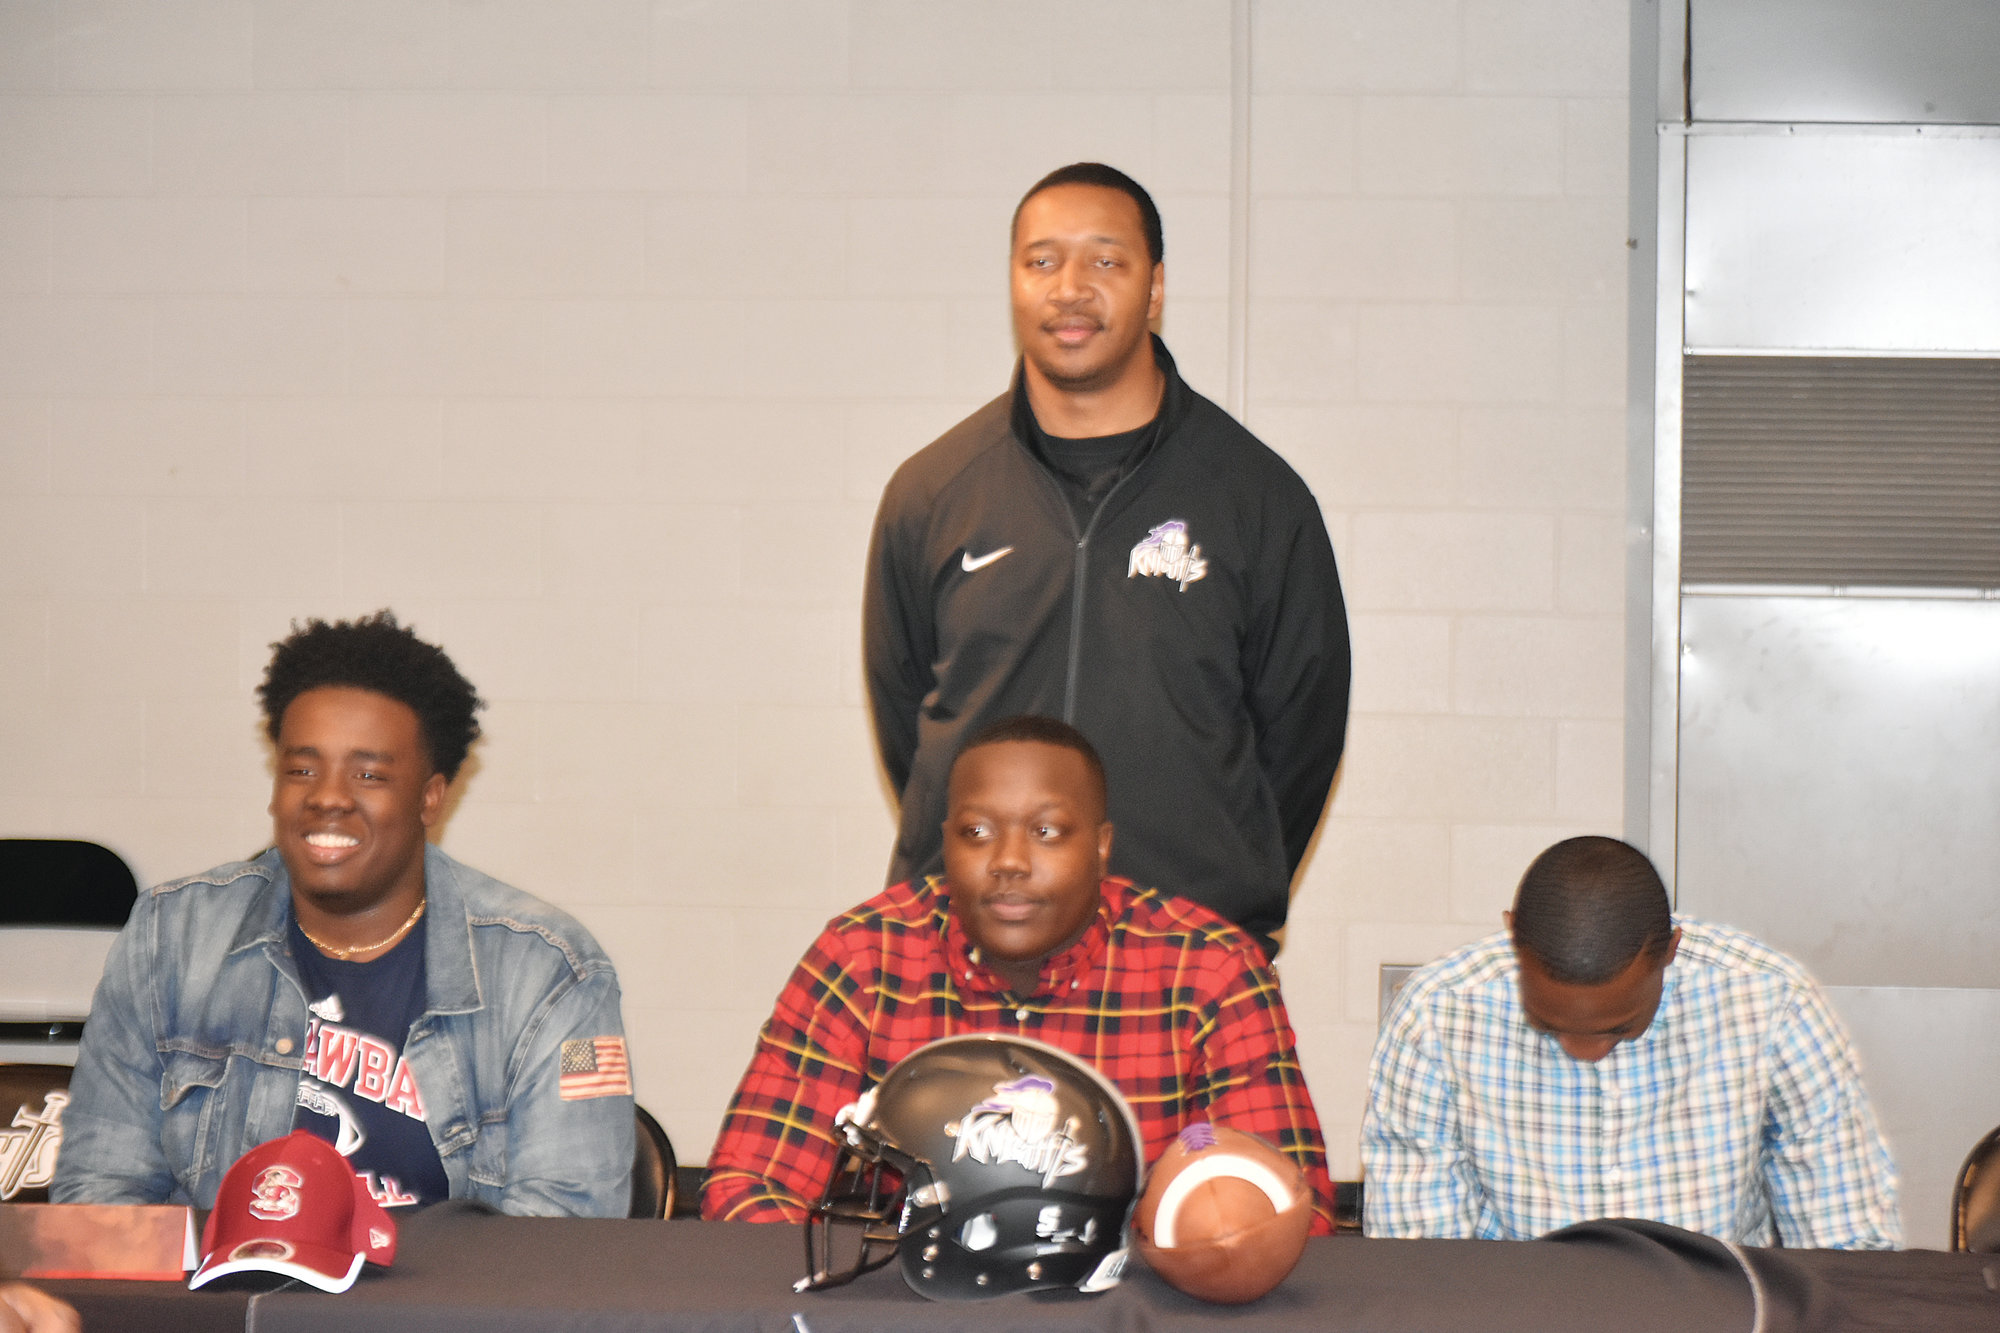 Crestwood standouts Zyricq Rufus, Terrance McClain and Anthony Bradley share a light moment  along with Knights head coach Roosevelt Nelson during a National Signing Day Event on Wednesday at the school. Rufus signed to play college football at Catawba College in Salisbury, N.C.